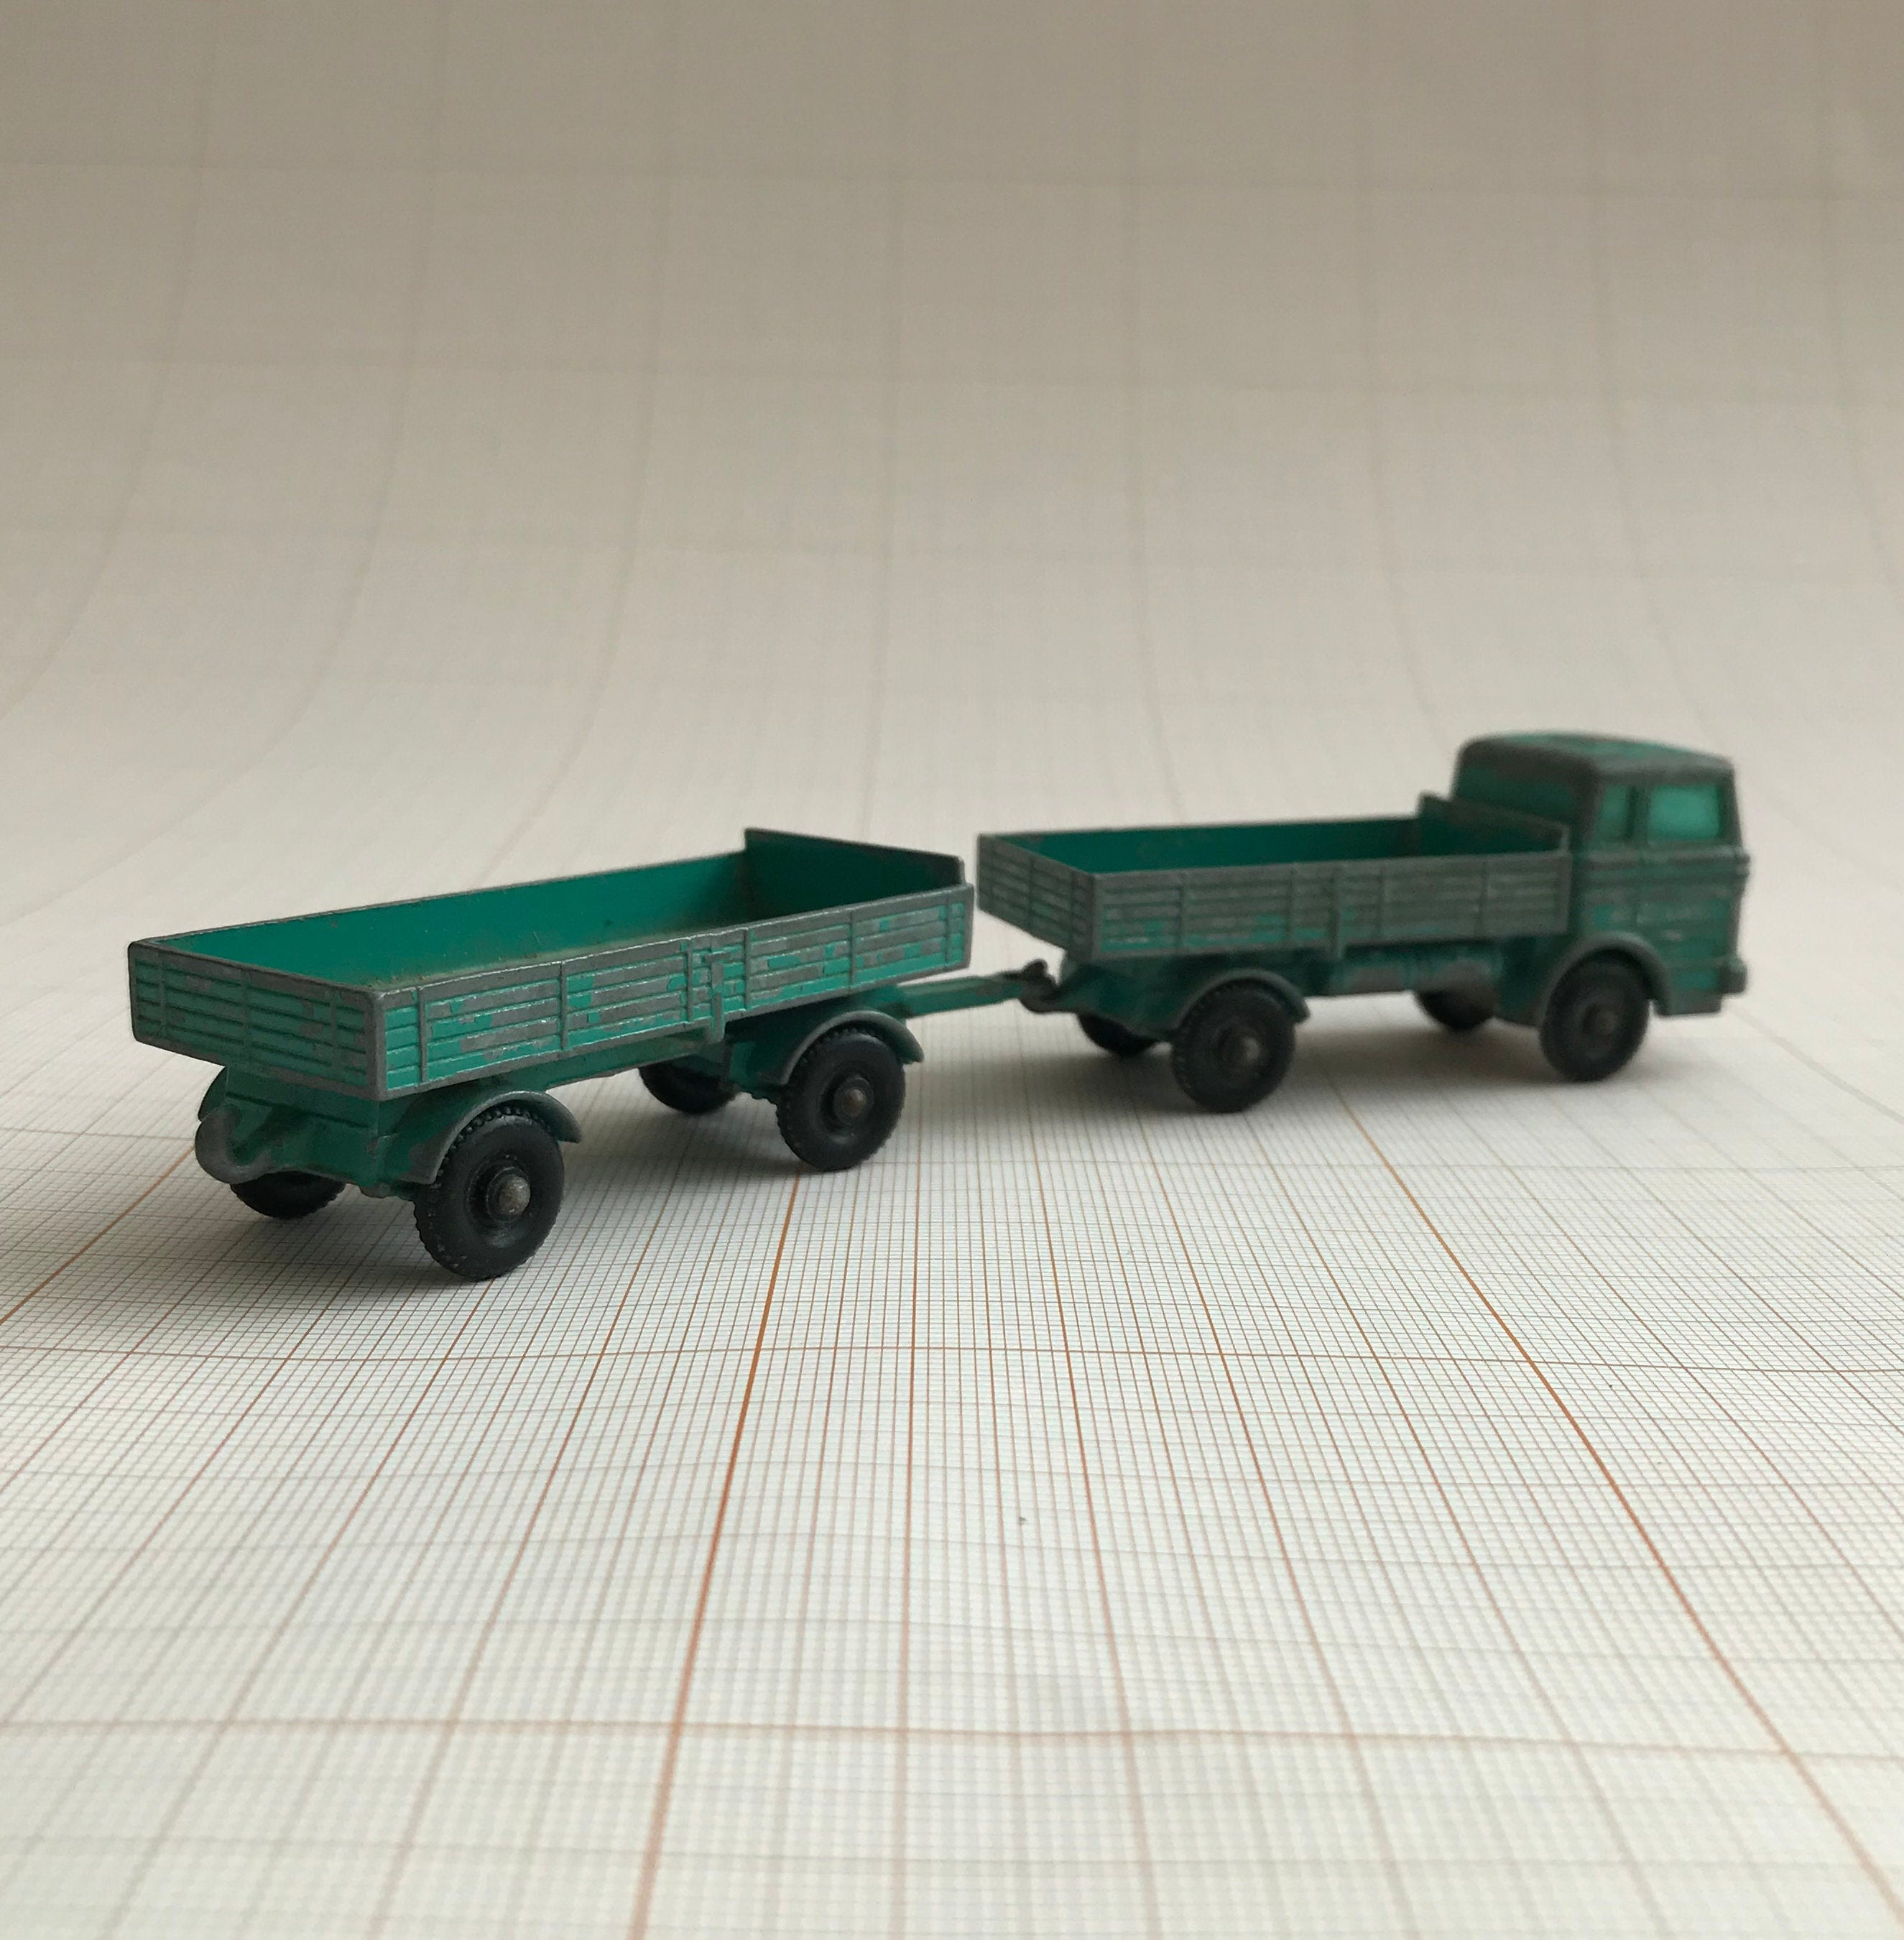 Vintage Lesley/Matchbox diecast Mercedes truck and trailer, Series No. 1, made in England, collectable car. Circa 1960s.